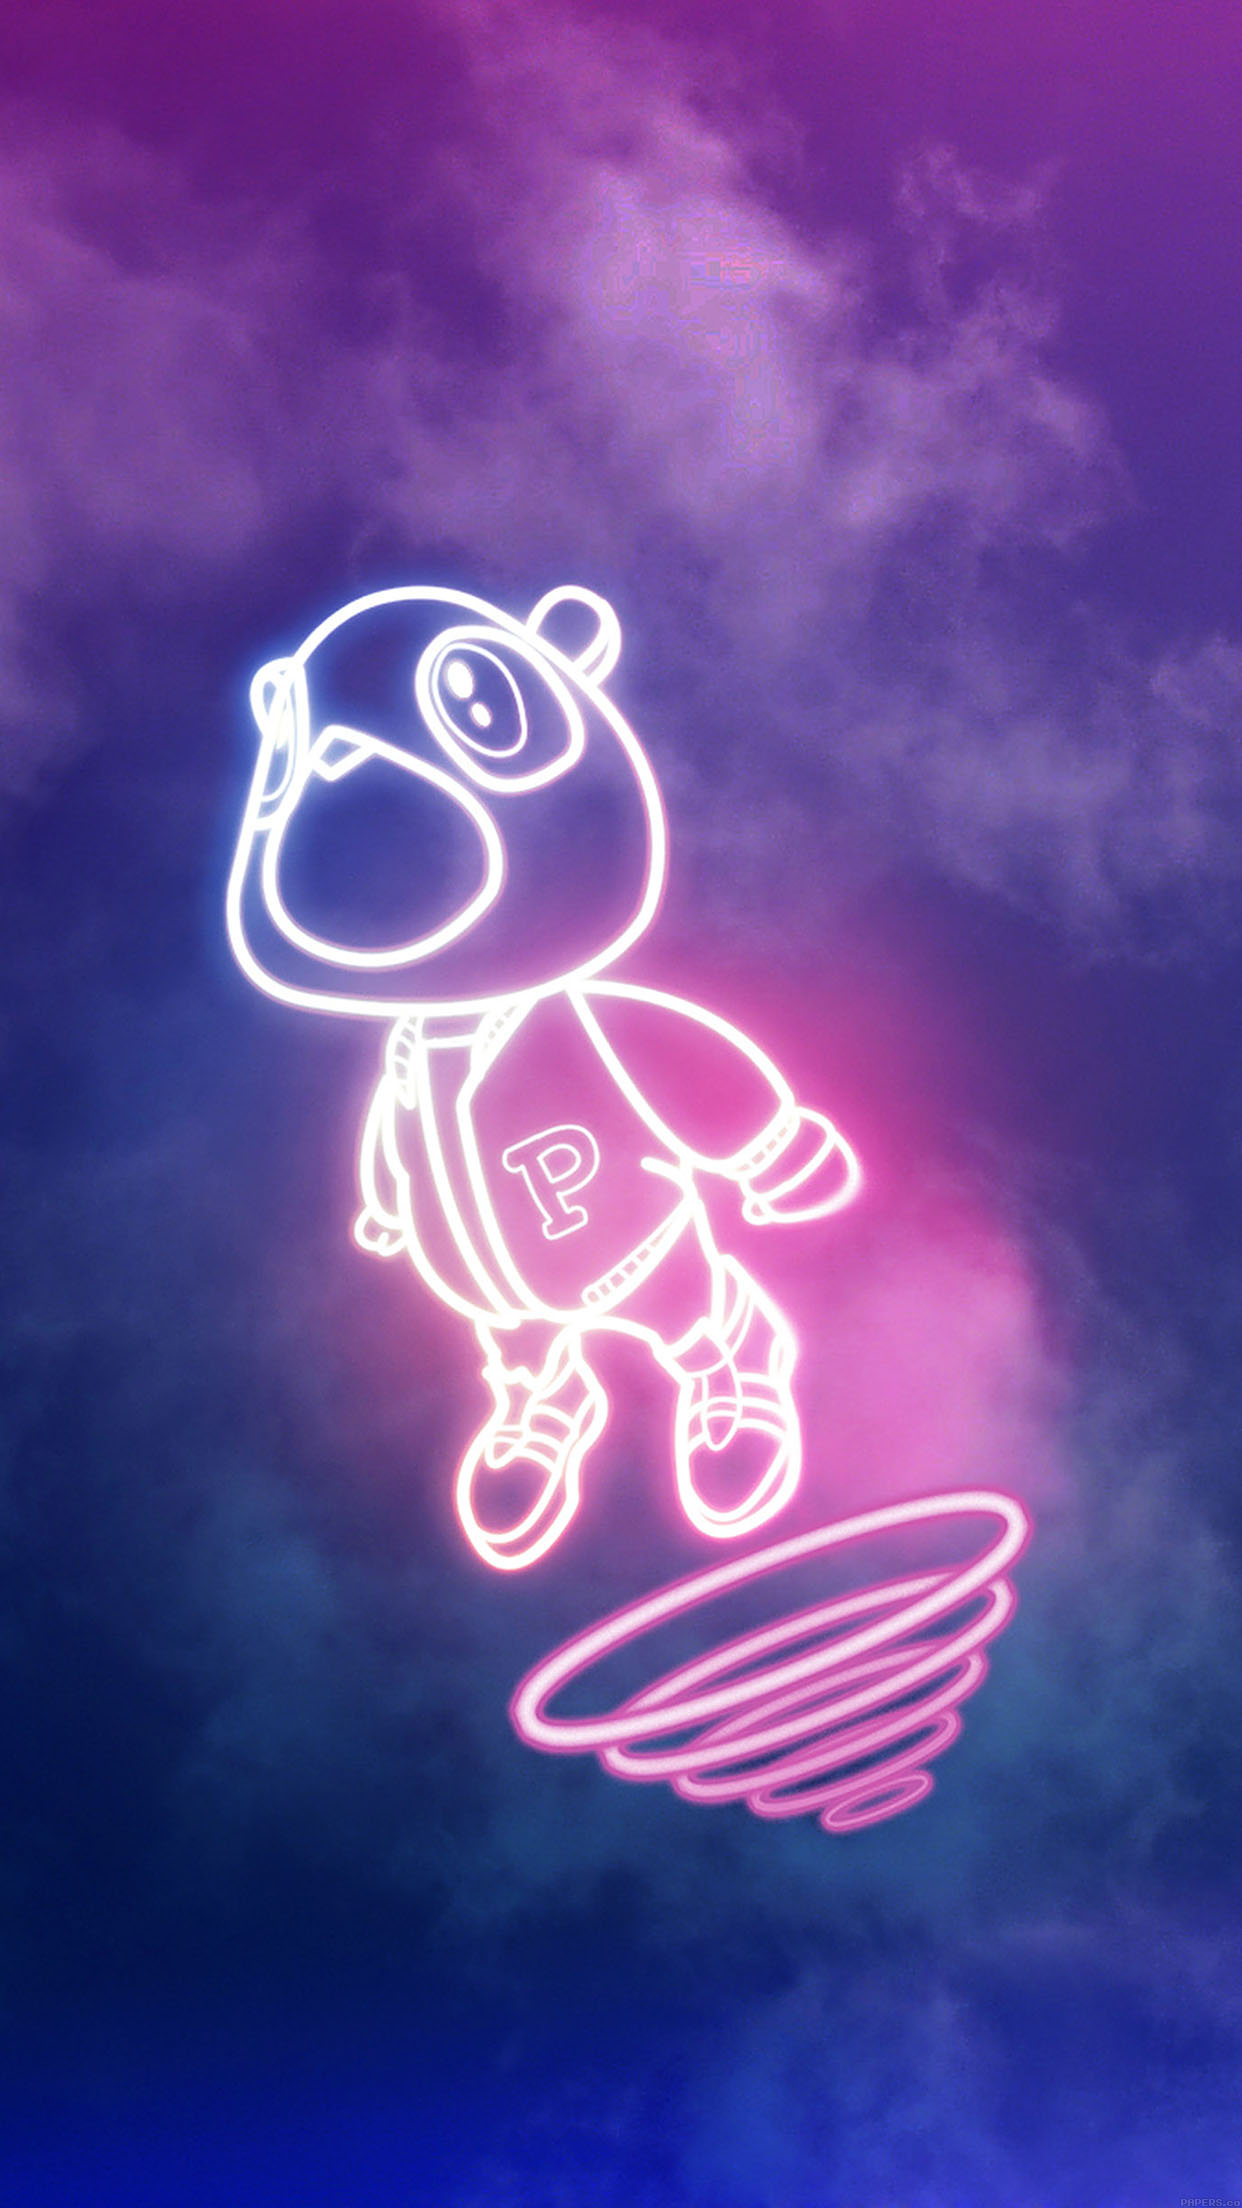 Iphonepapers Aa79 Wallpaper Drop Out Bear Of Kanye Illust